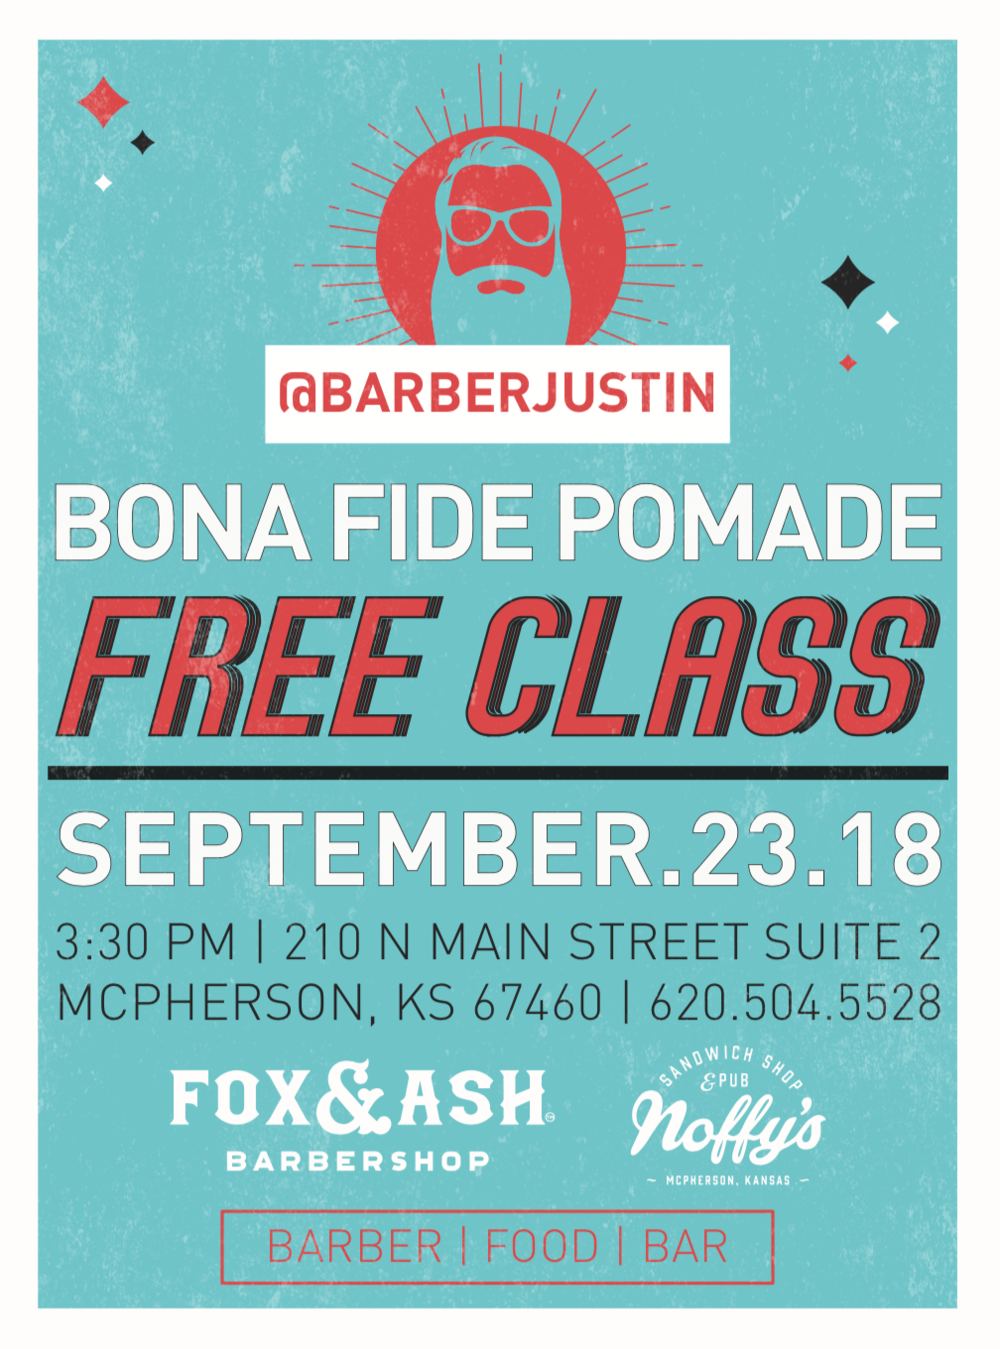 @barberjustin & @bonafidepomade are coming to FOX & ASH // come learn, grub, and drink with us September 23rd. This event is open to the public- fellow students, barbers, and cosmetologists bring a friend or three! @jamescutshair will also be teaching a class on fading and braiding. - free bona fide class